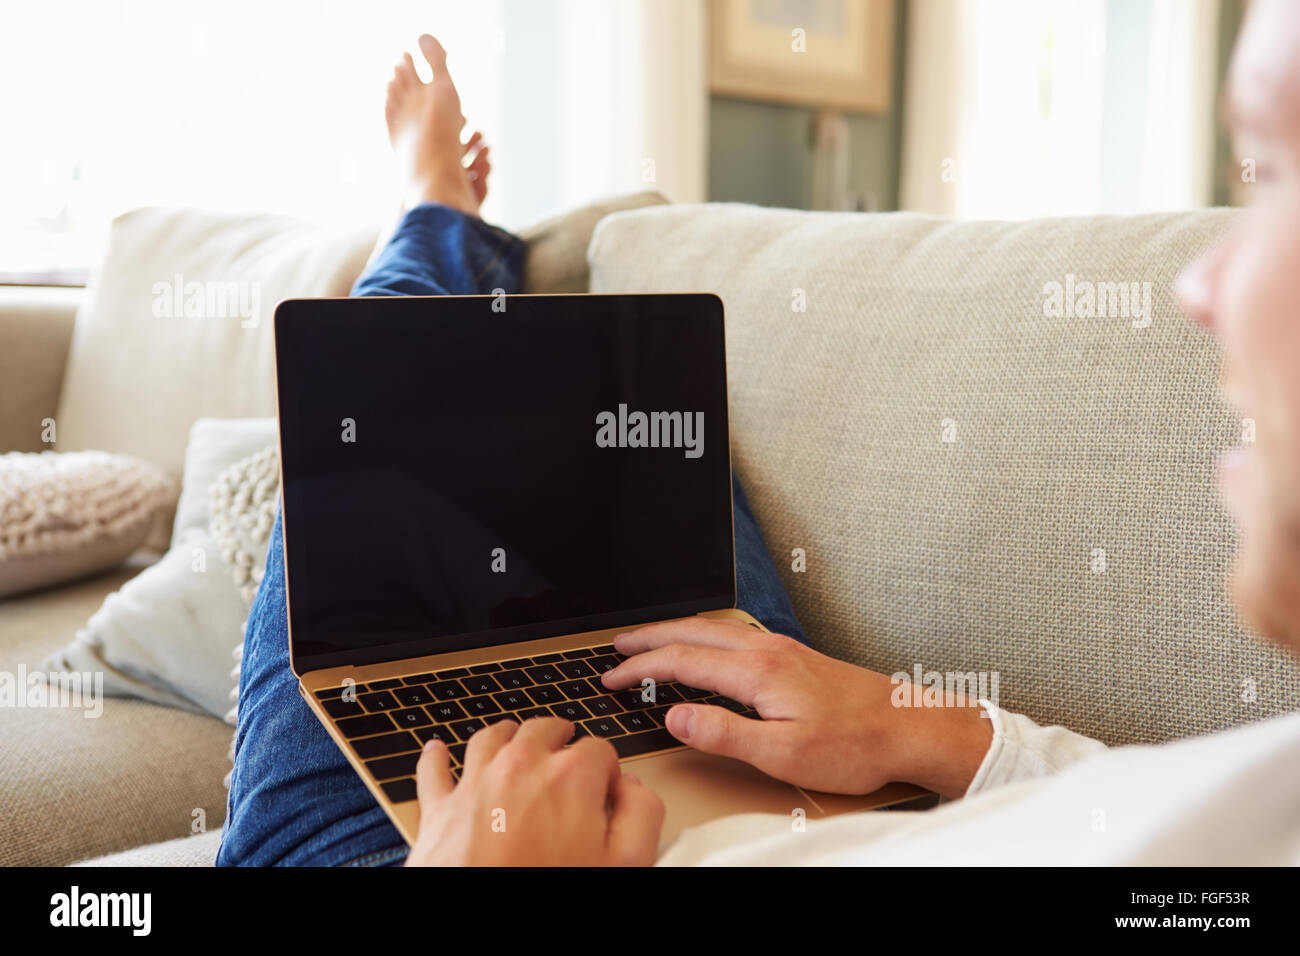 Man Relaxing On Sofa At Home Using Laptop Computer - Stock Image